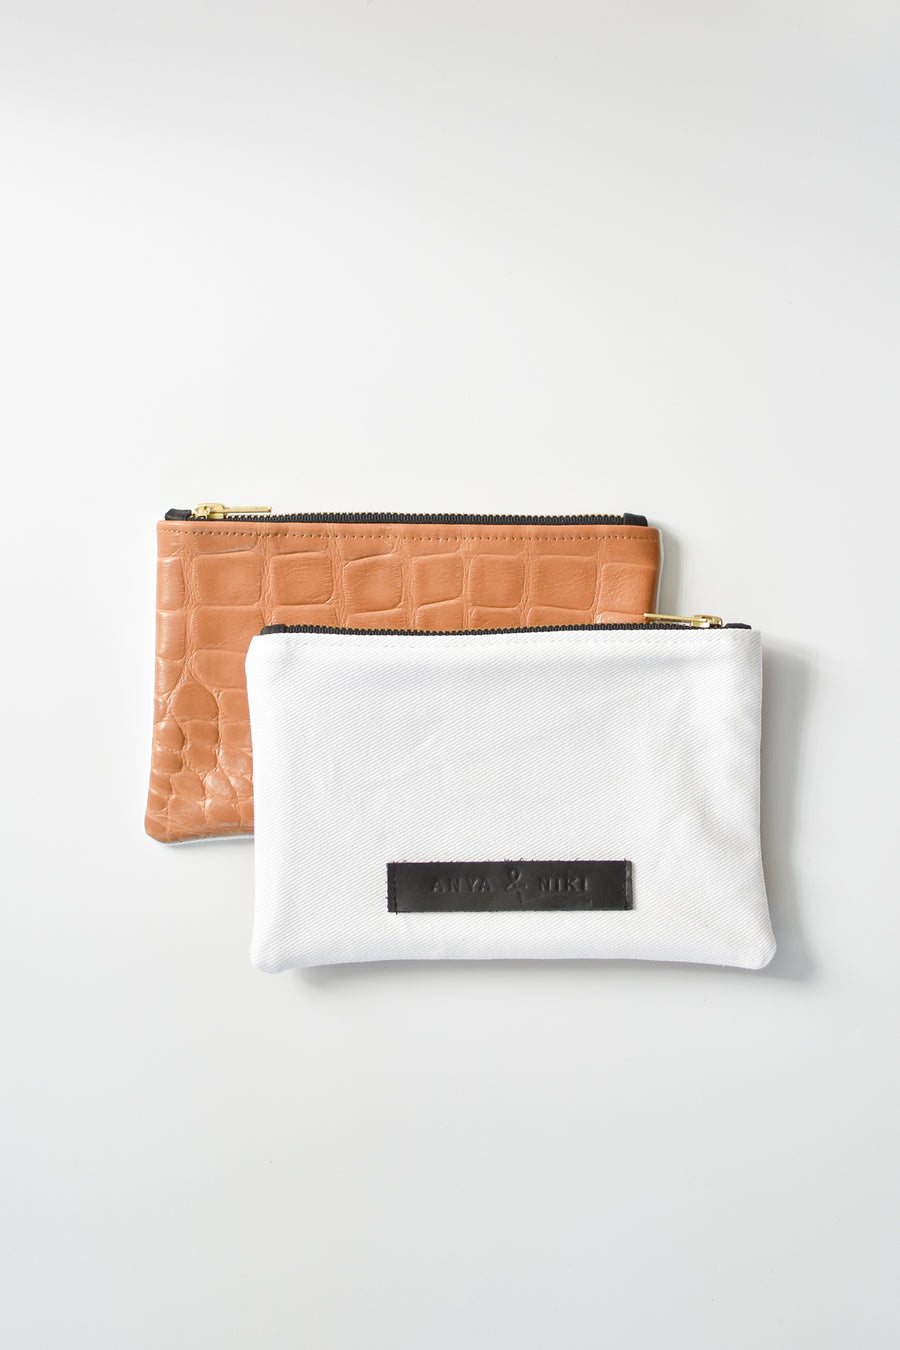 White denim and caramel colored embossed leather skin small pouch with brass zipper and leather logo label.